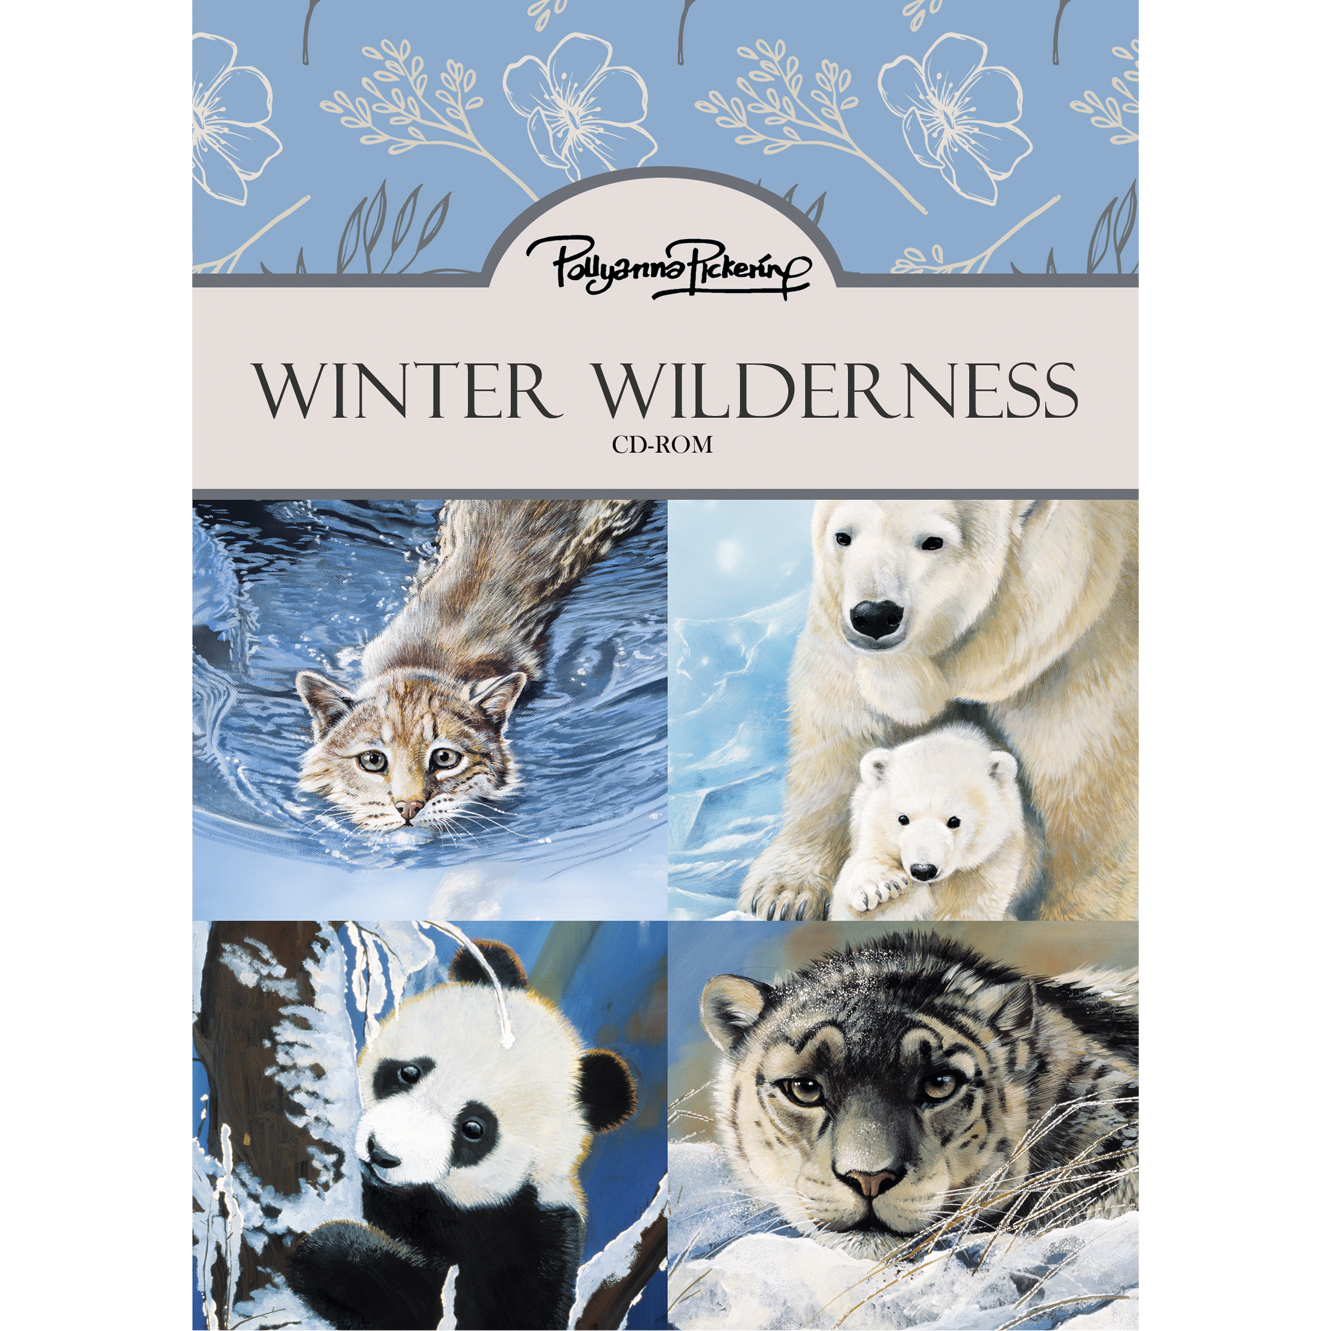 Pollyanna Pickering Winter Wilderness DVD ROM